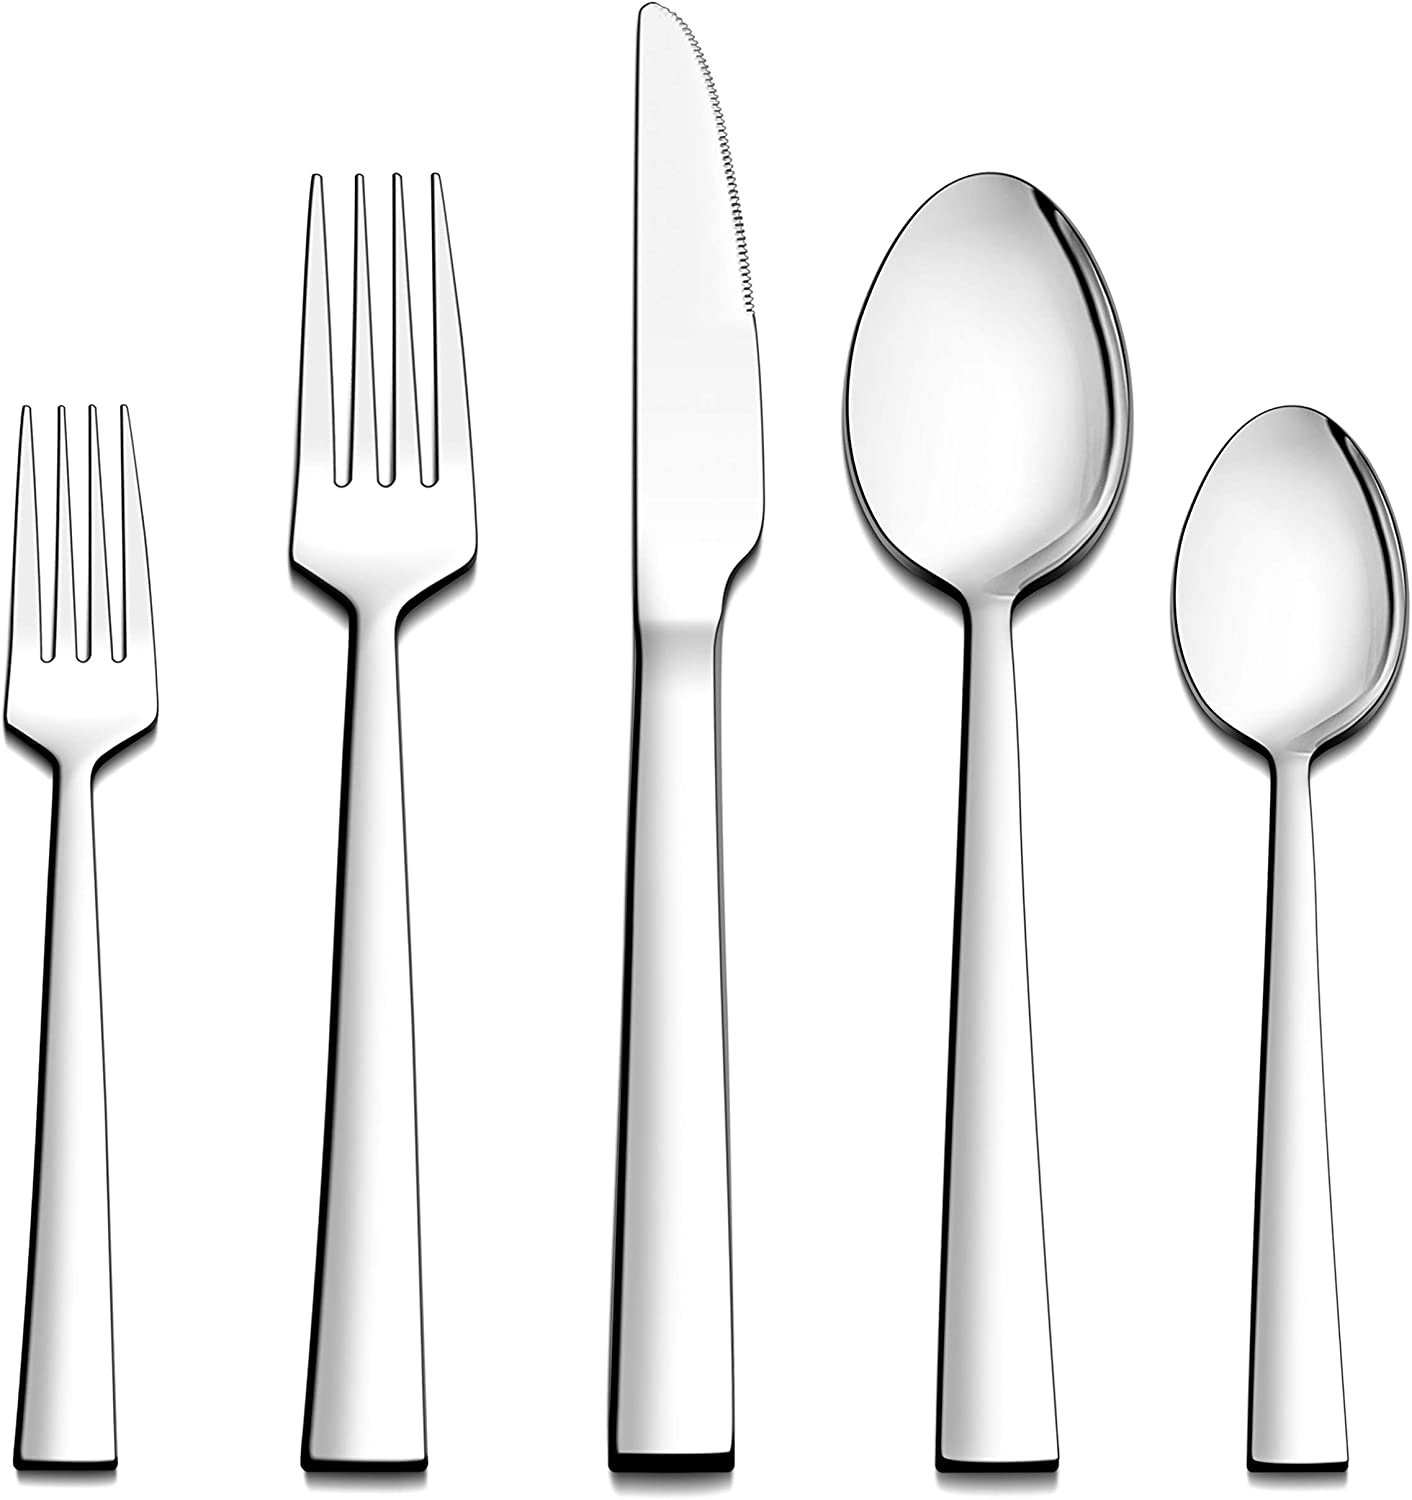 LIANYU 20-Piece Silverware Set, Stainless Steel Square Flatware Cutlery Set for 4, Eating Utensils Tableware Set, Mirror Finish, Dishwasher Safe